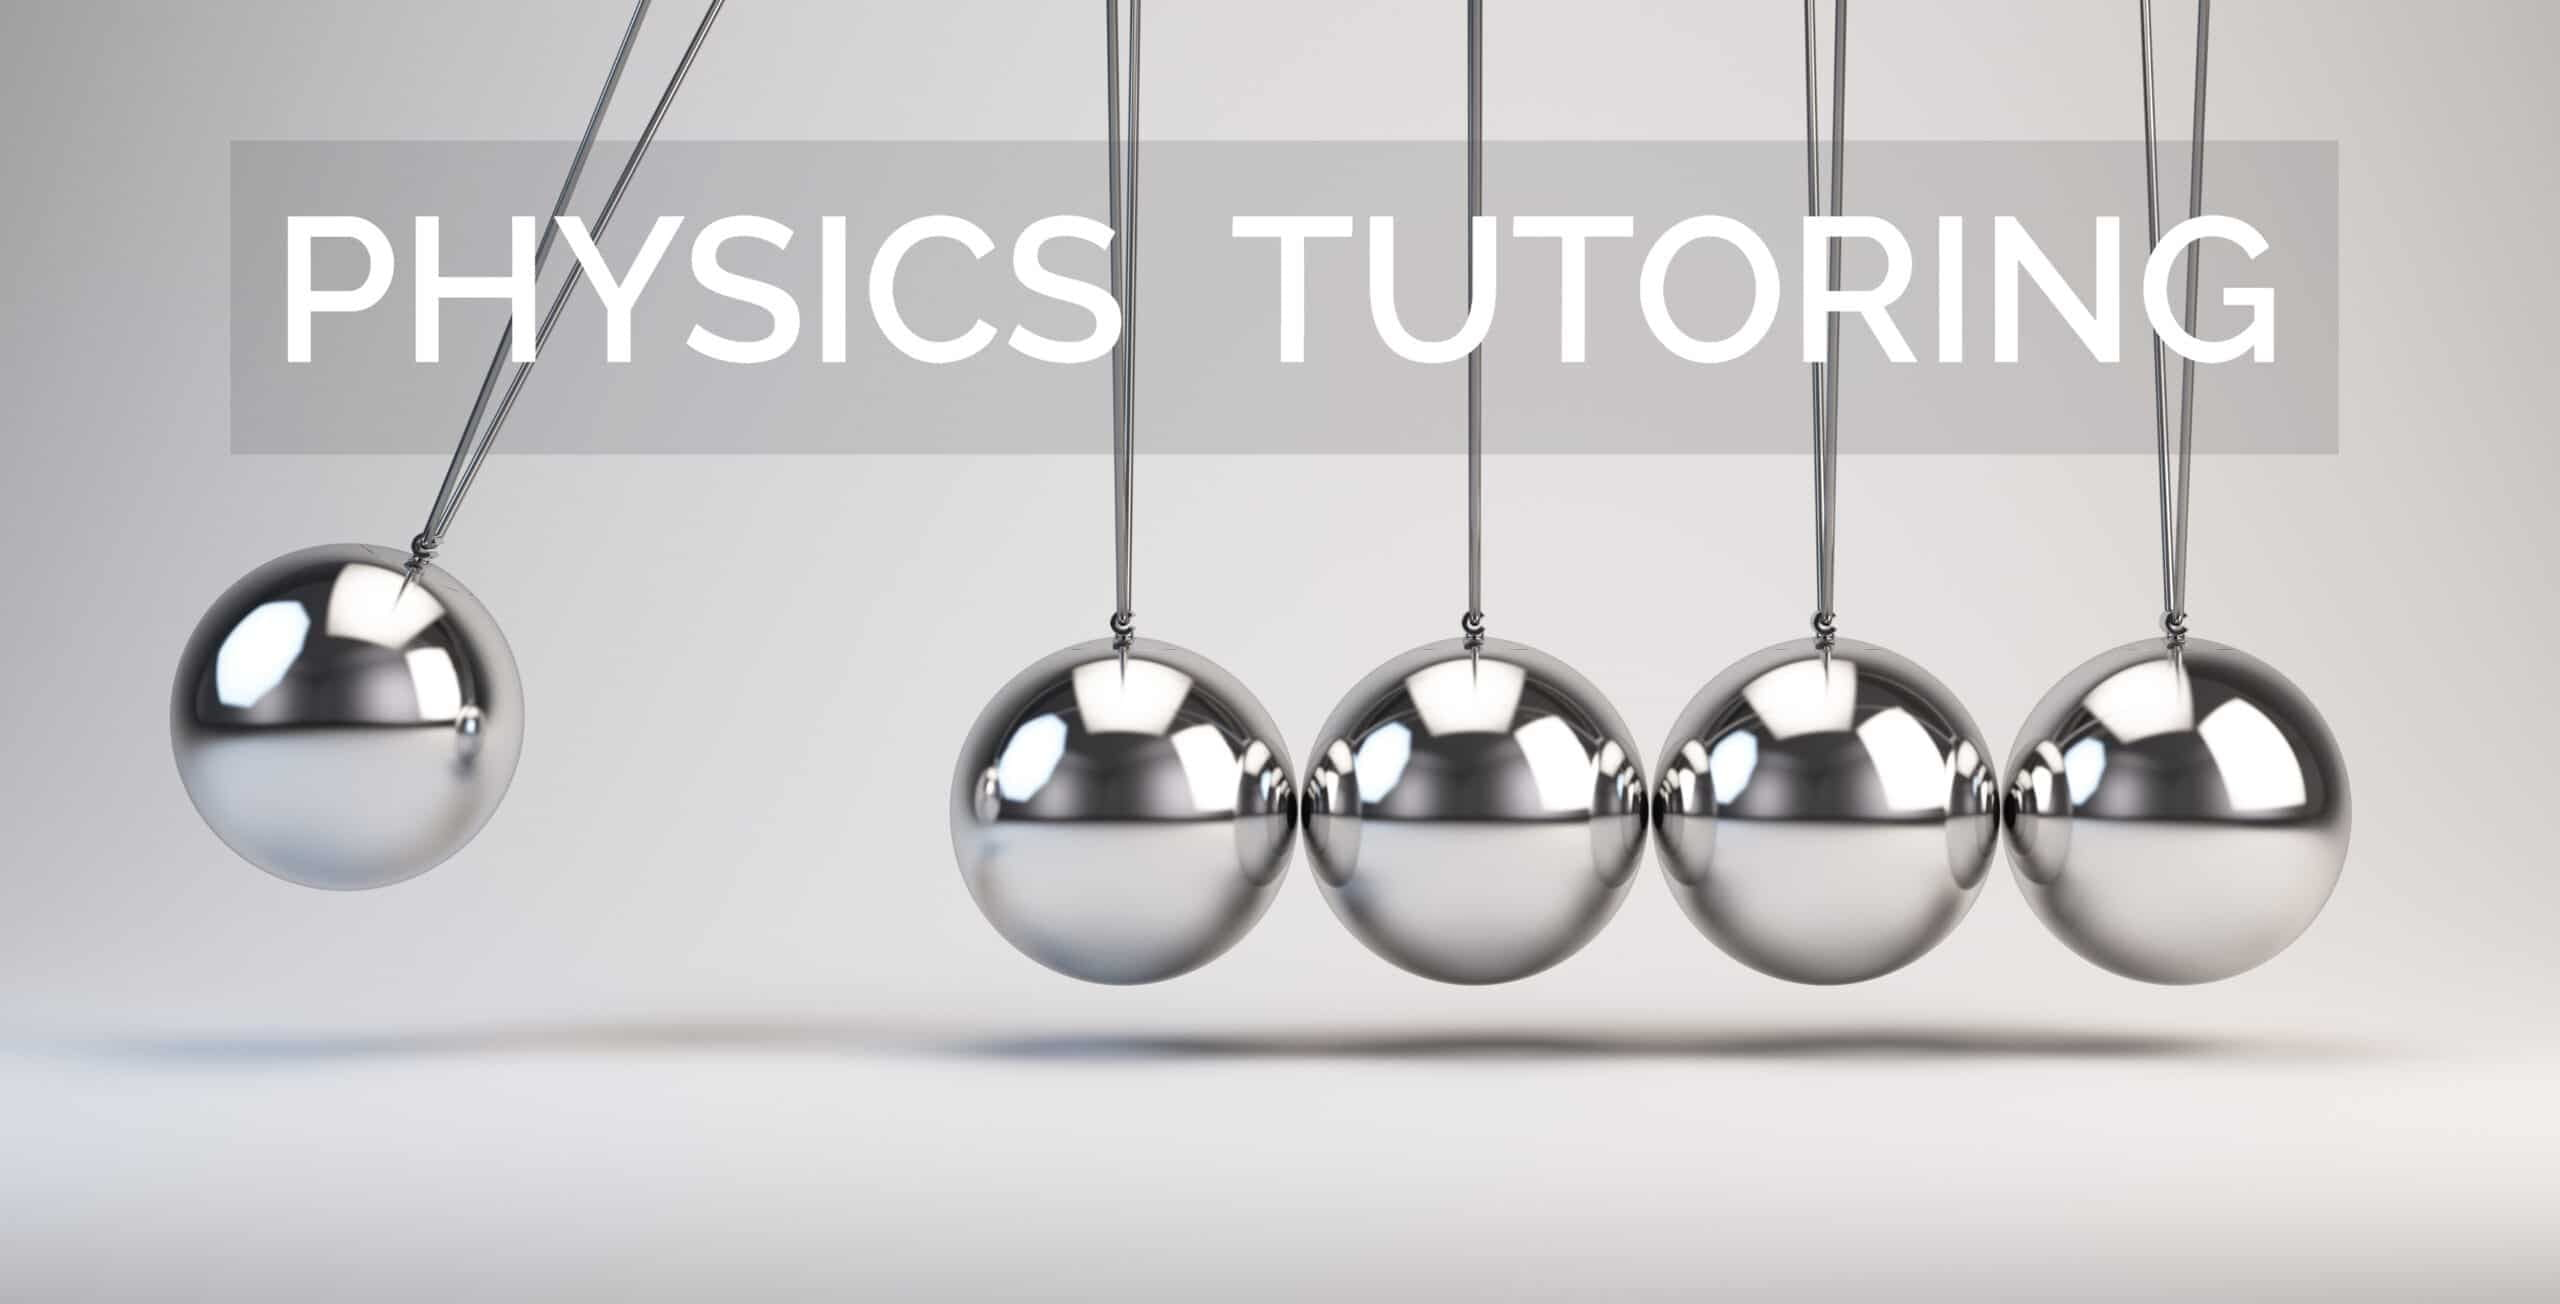 IB PHYSICS TUTORING AP PHYSICS TUTORING WITH HACK YOUR COURSE IN VANCOUVER AND TORONTO